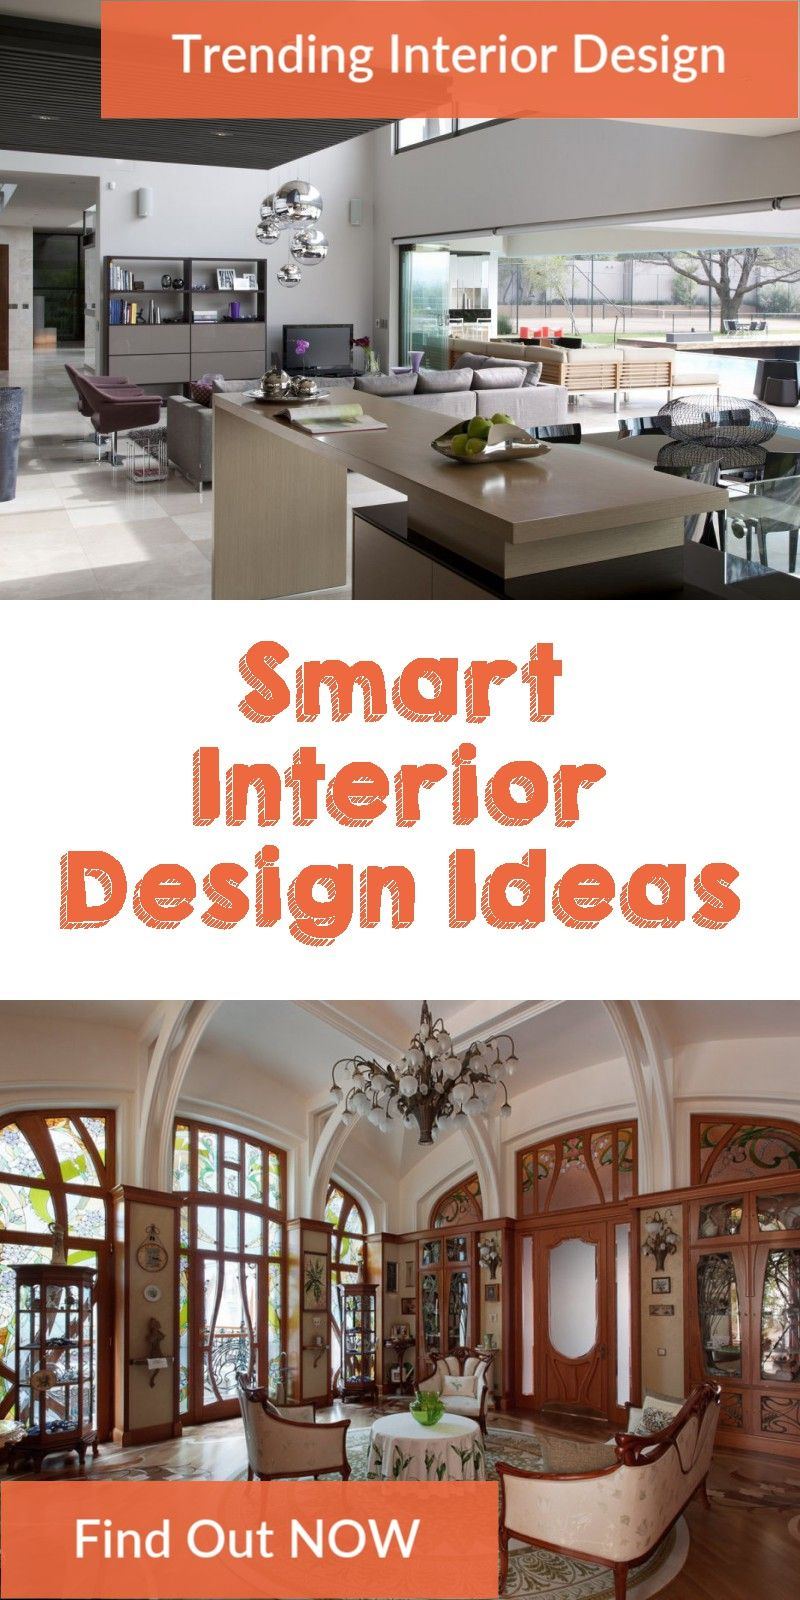 Interior Design Ideas Home Is Where The Heart Is But Check Here First Check This Useful Article By Going To The Link At Th Interior Design Design Interior